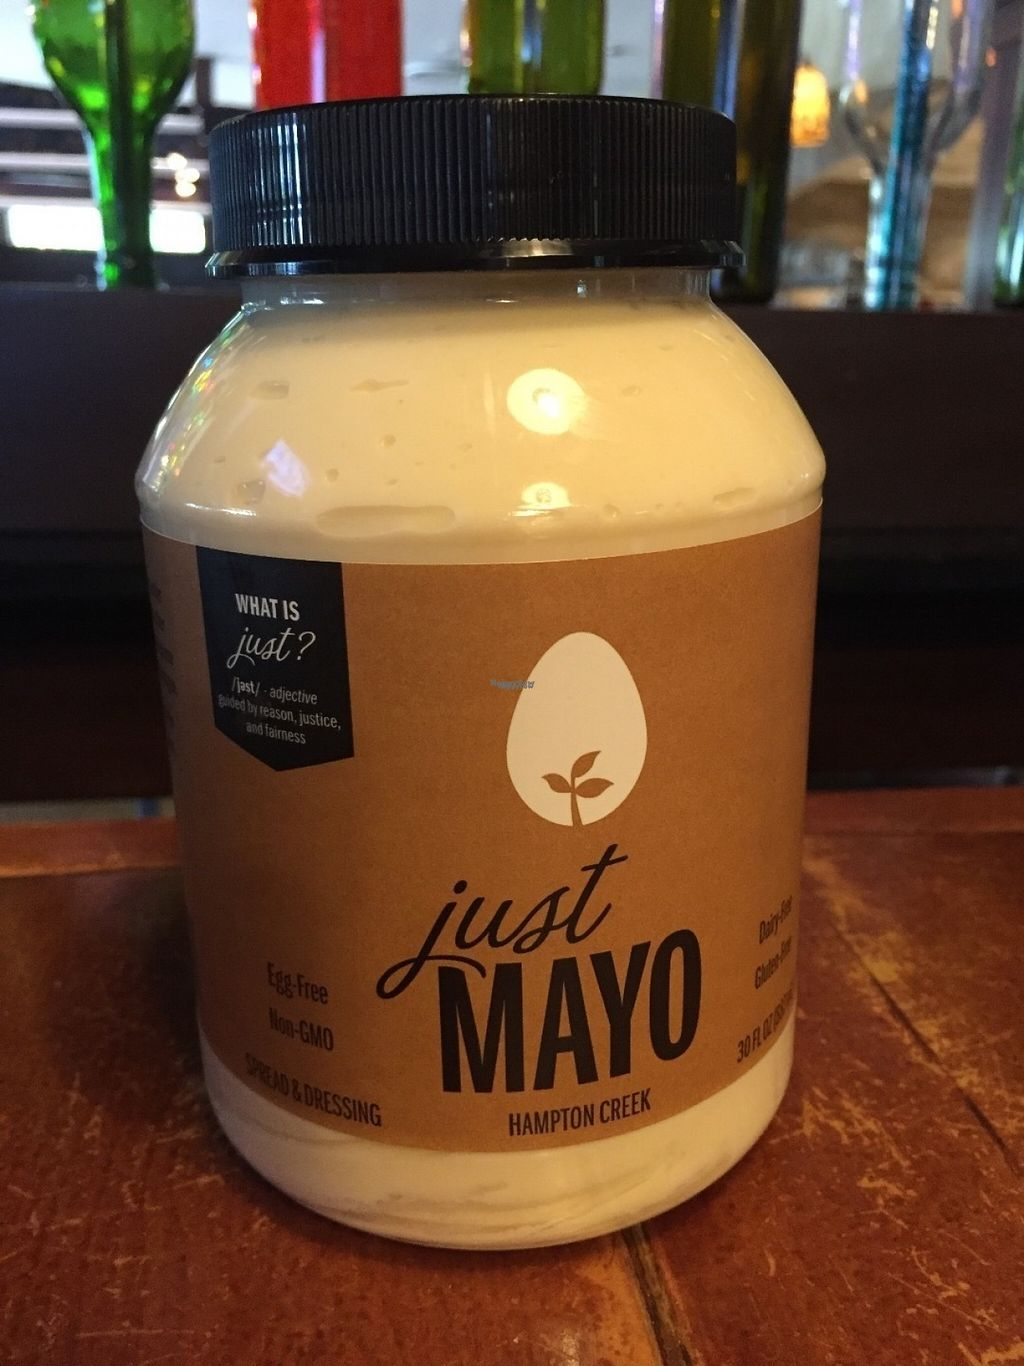 """Photo of Mellow Mushroom  by <a href=""""/members/profile/Kruss23"""">Kruss23</a> <br/>Proudly server the Vegan mayo - Just Mayo <br/> November 5, 2016  - <a href='/contact/abuse/image/82376/186670'>Report</a>"""